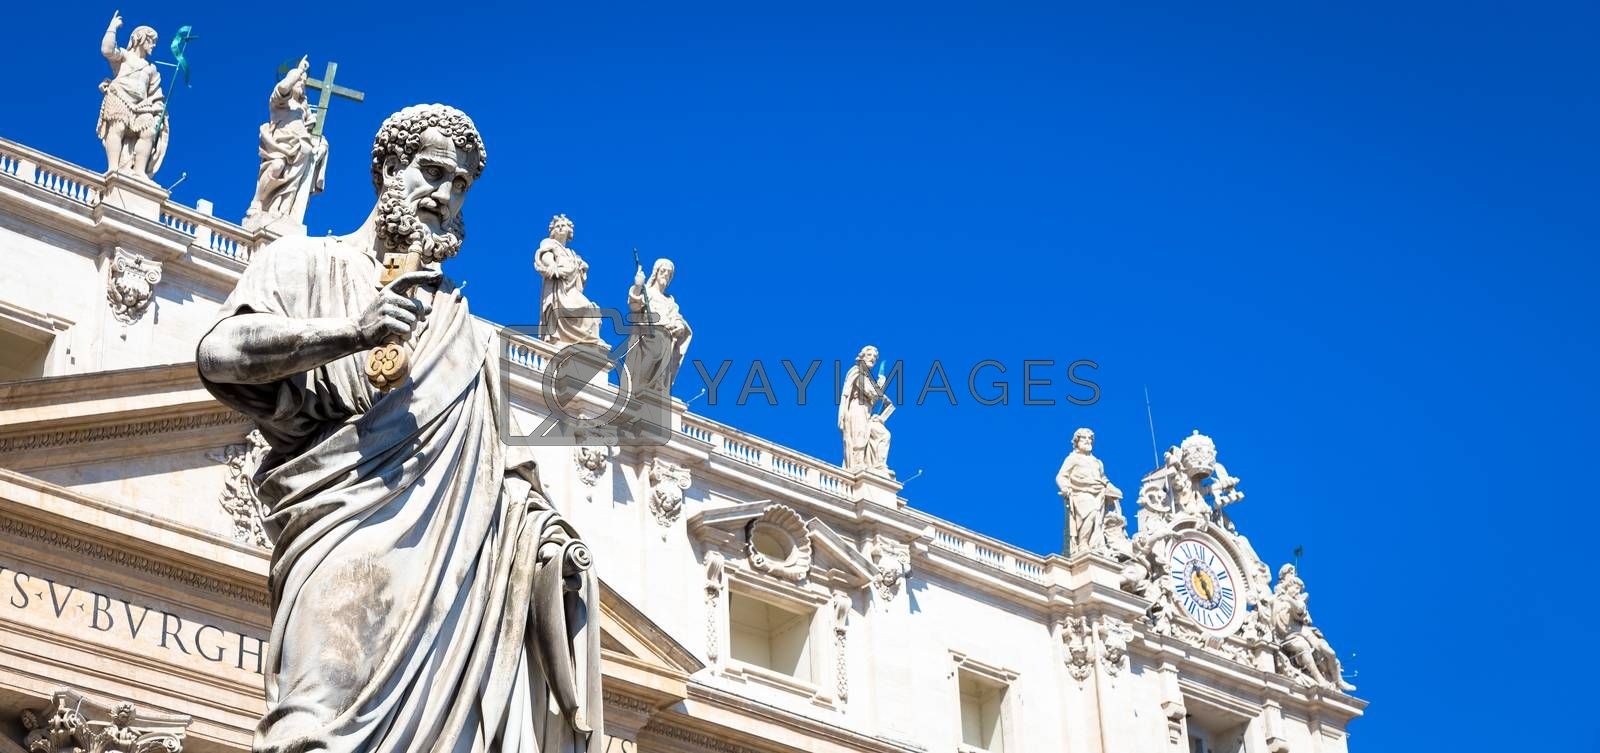 Detail of Saint Peter statue located in front of Saint Peter Cathedral entrance in Rome, Italy - Vatican City